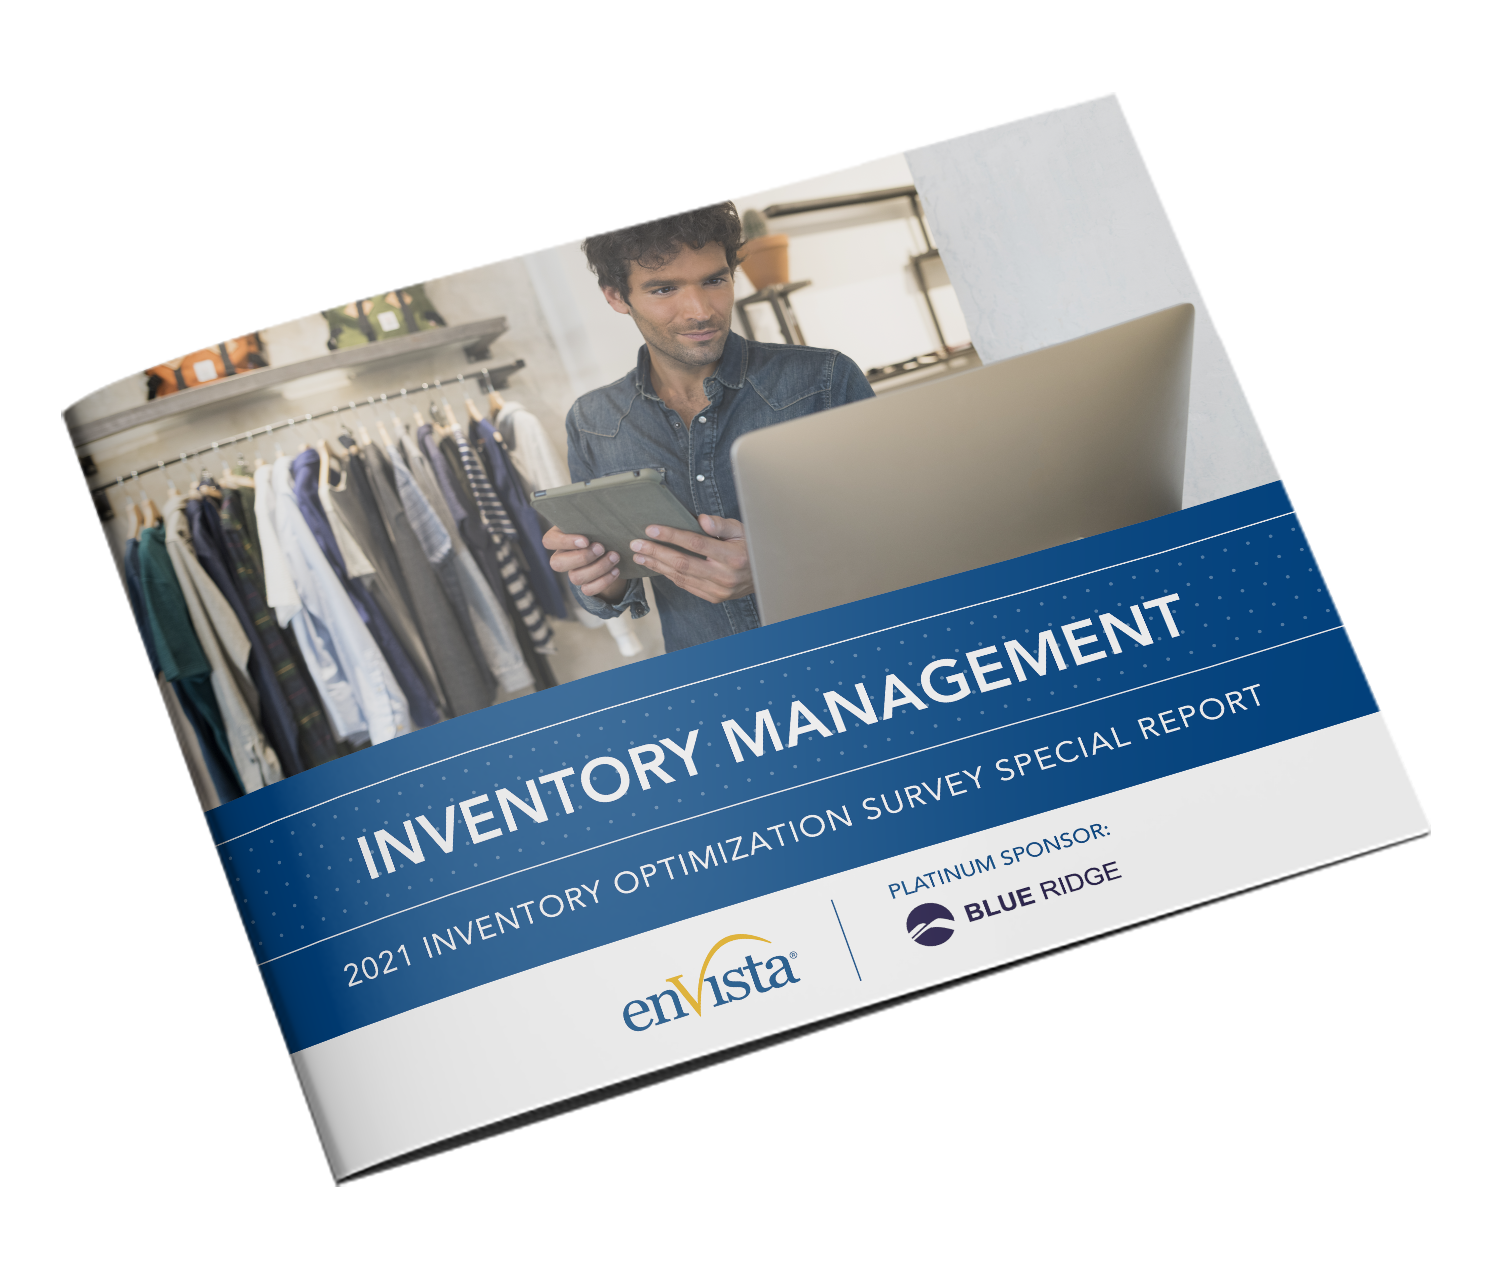 inventory management cover